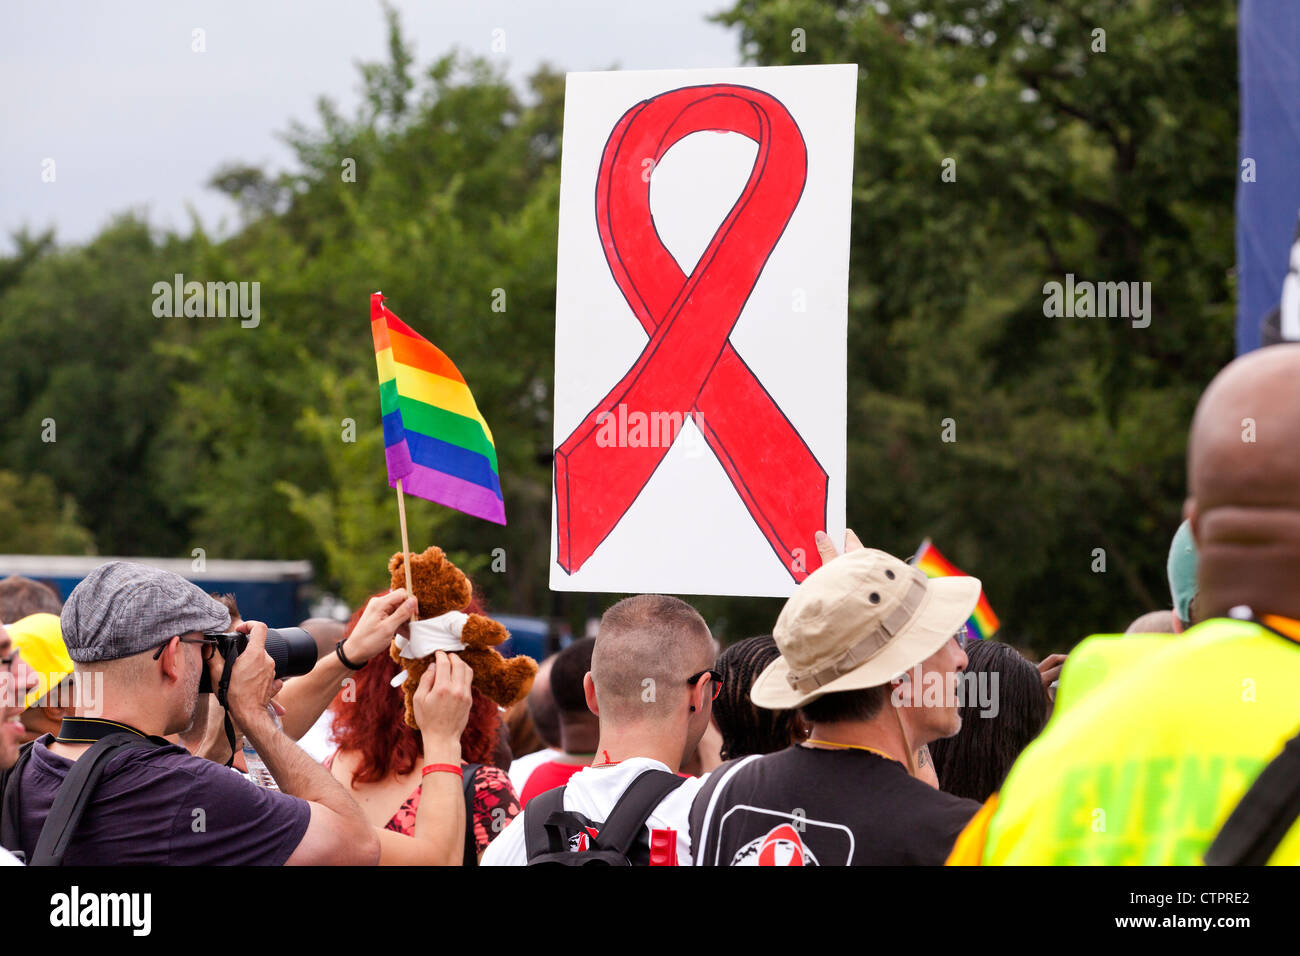 A man holding up an HIV AIDS awareness ribbon sign - July 22, 2012, Washington, DC USA - Stock Image